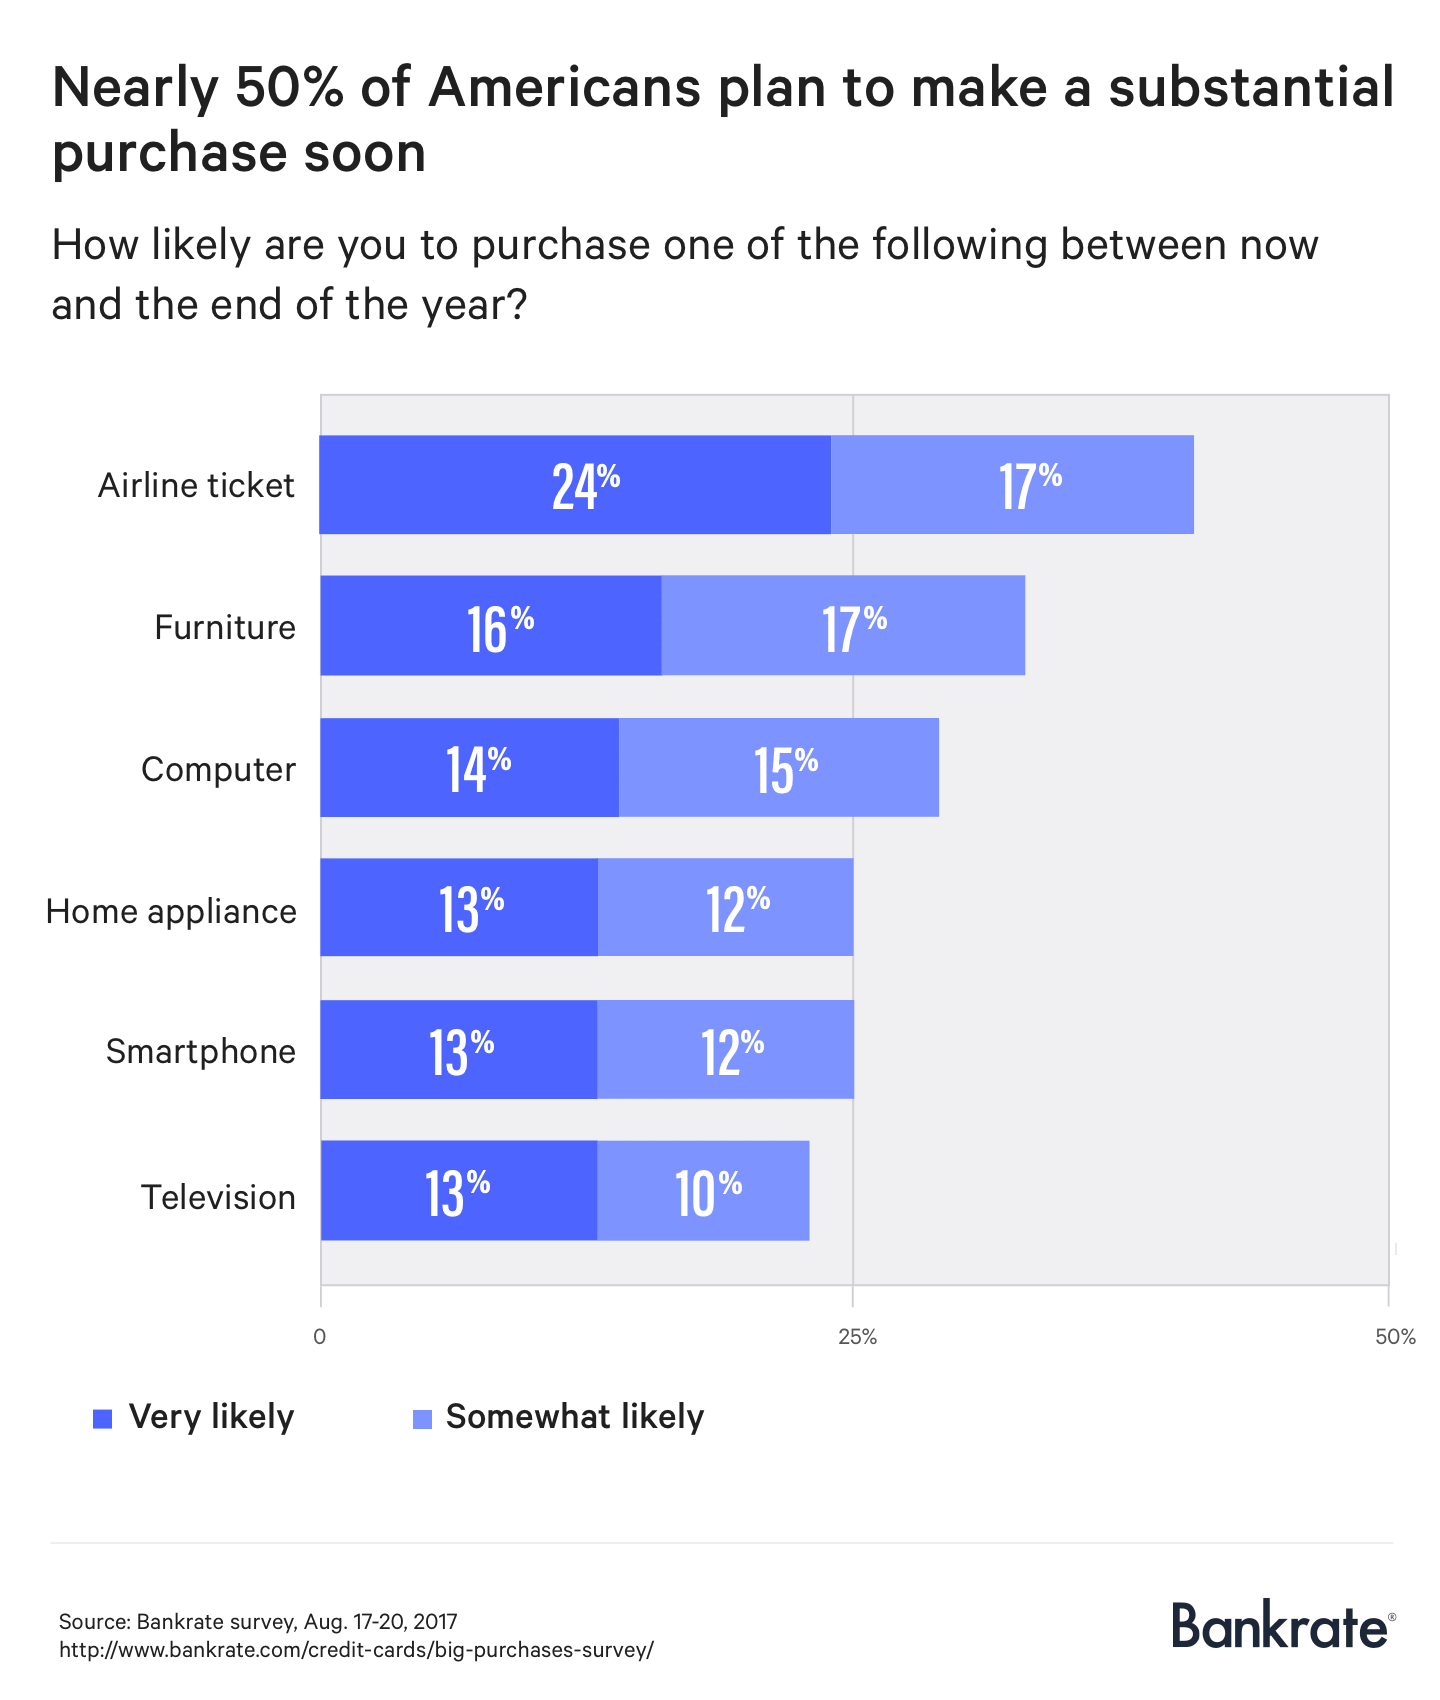 About half of Americans plan to make a big purchase before the end of the year.